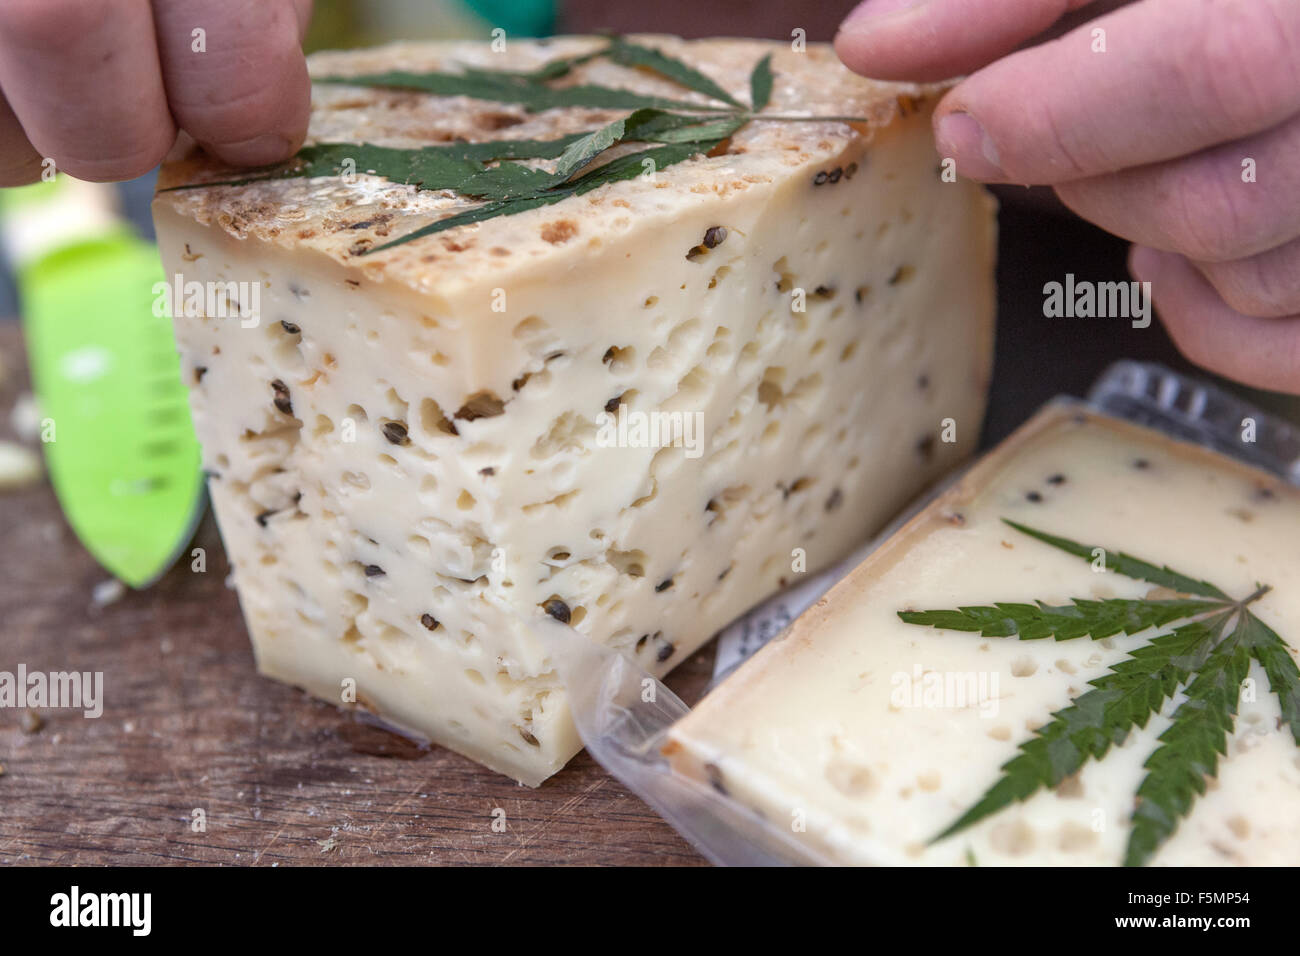 Cheese Hemp High Resolution Stock Photography And Images Alamy